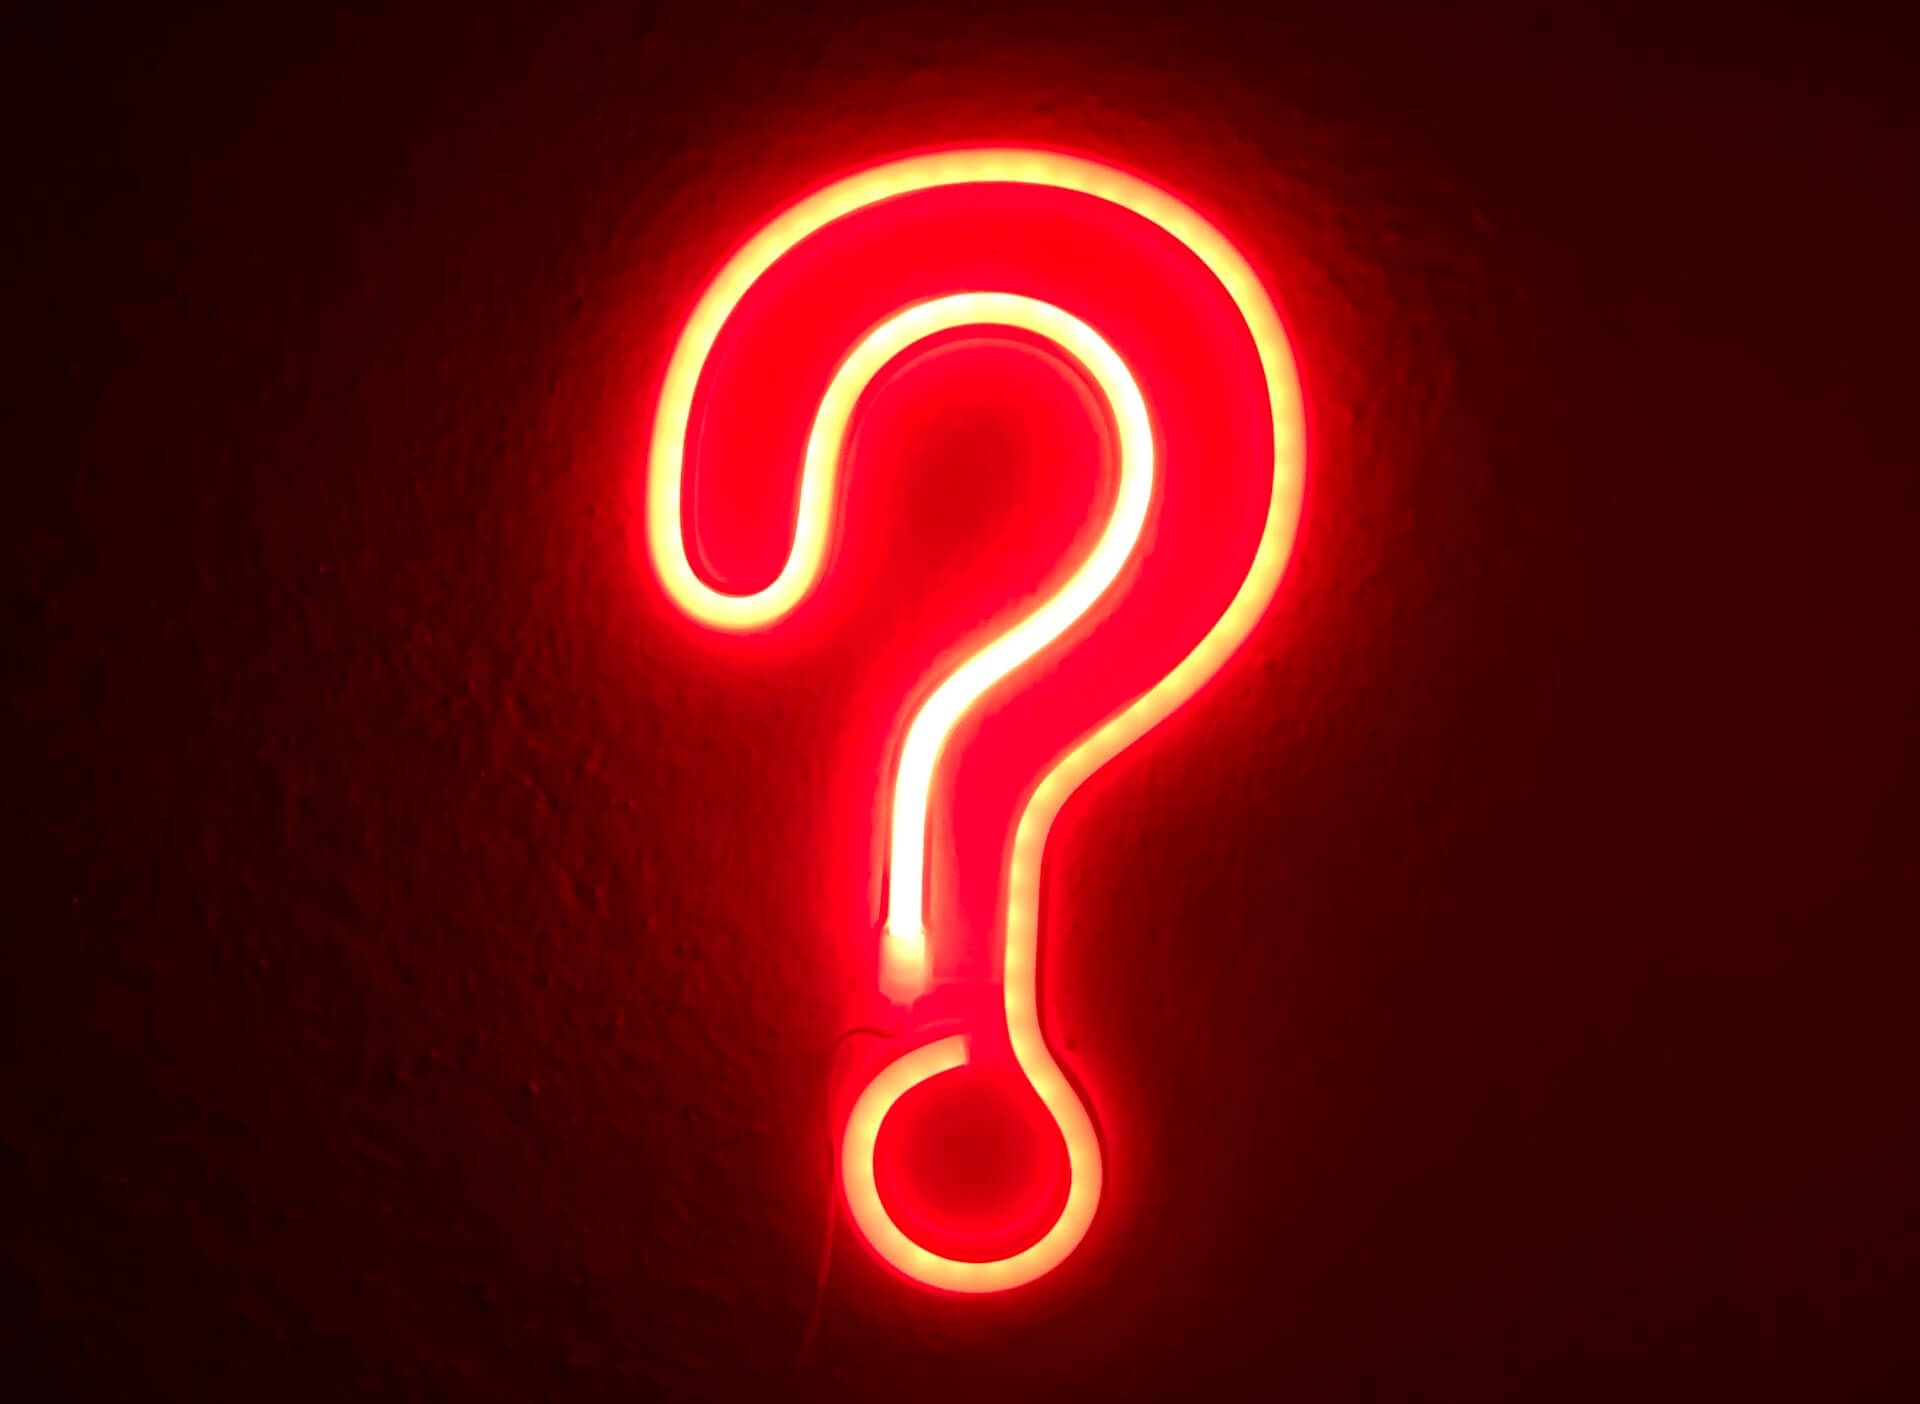 Red neon sign question mark